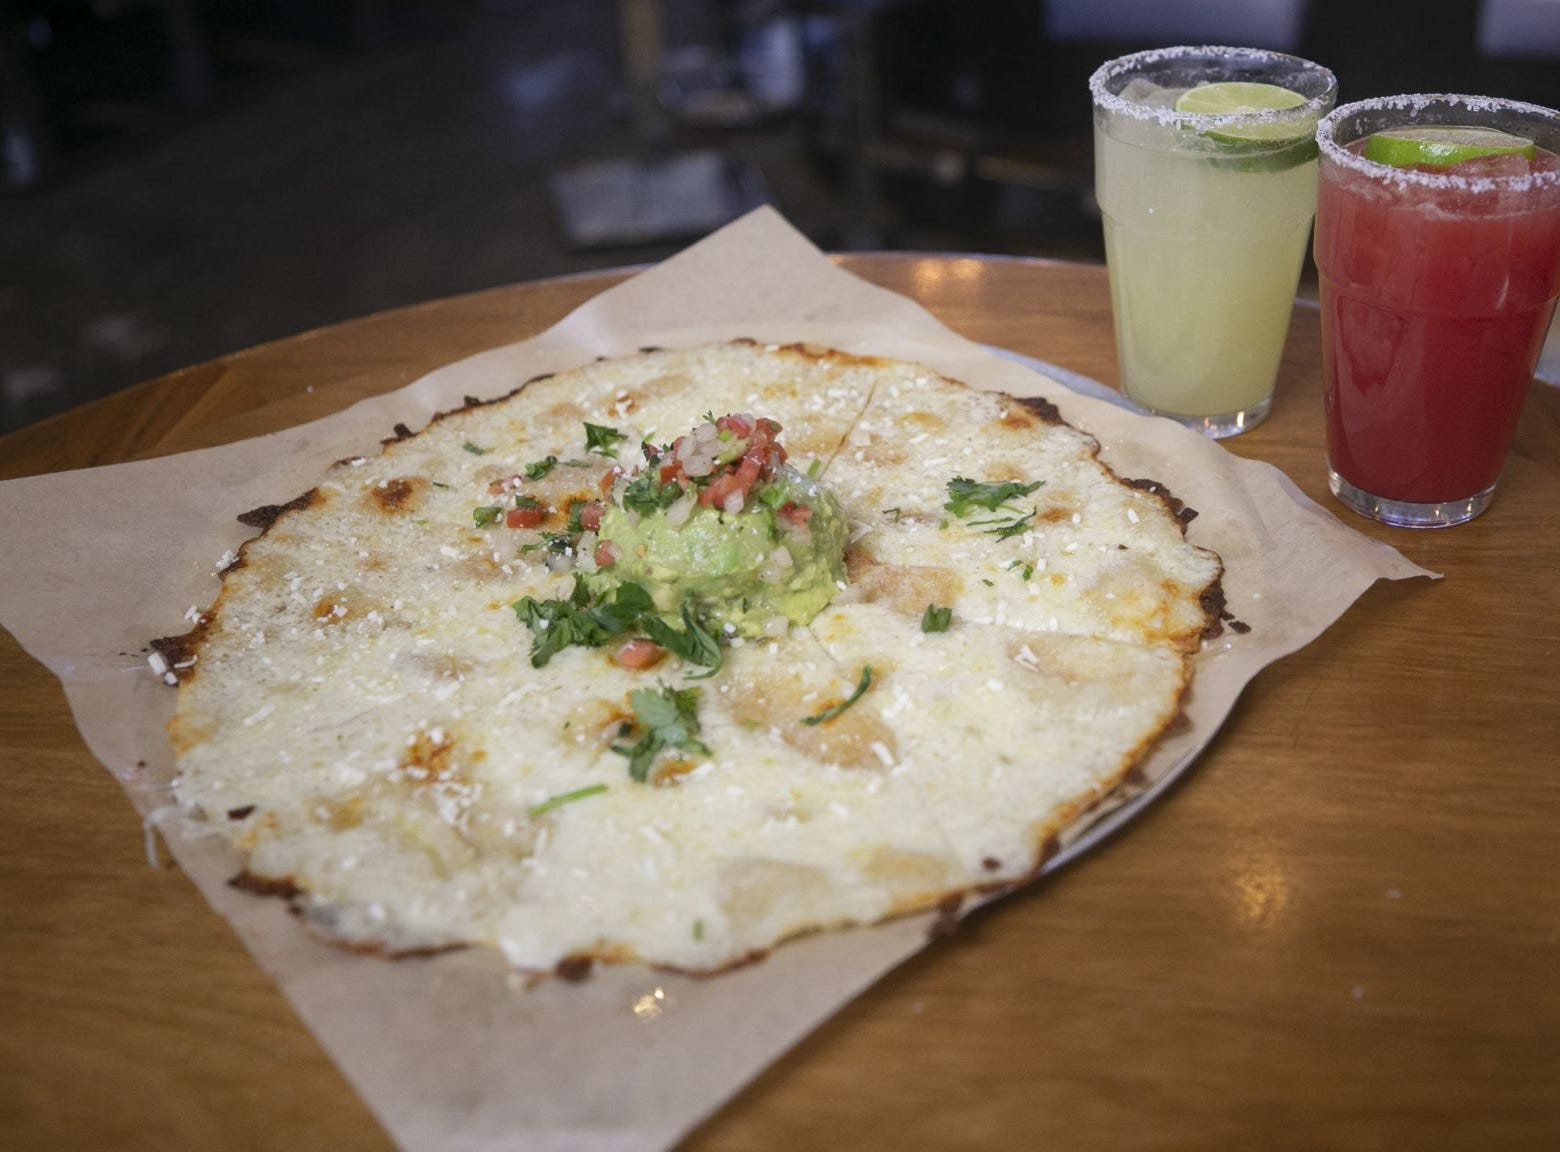 Cheese Crisp and a margarita at Blanco Tacos in Terminal Four of Phoenix Sky Harbor International Airport on Tuesday, November 13, 2018.